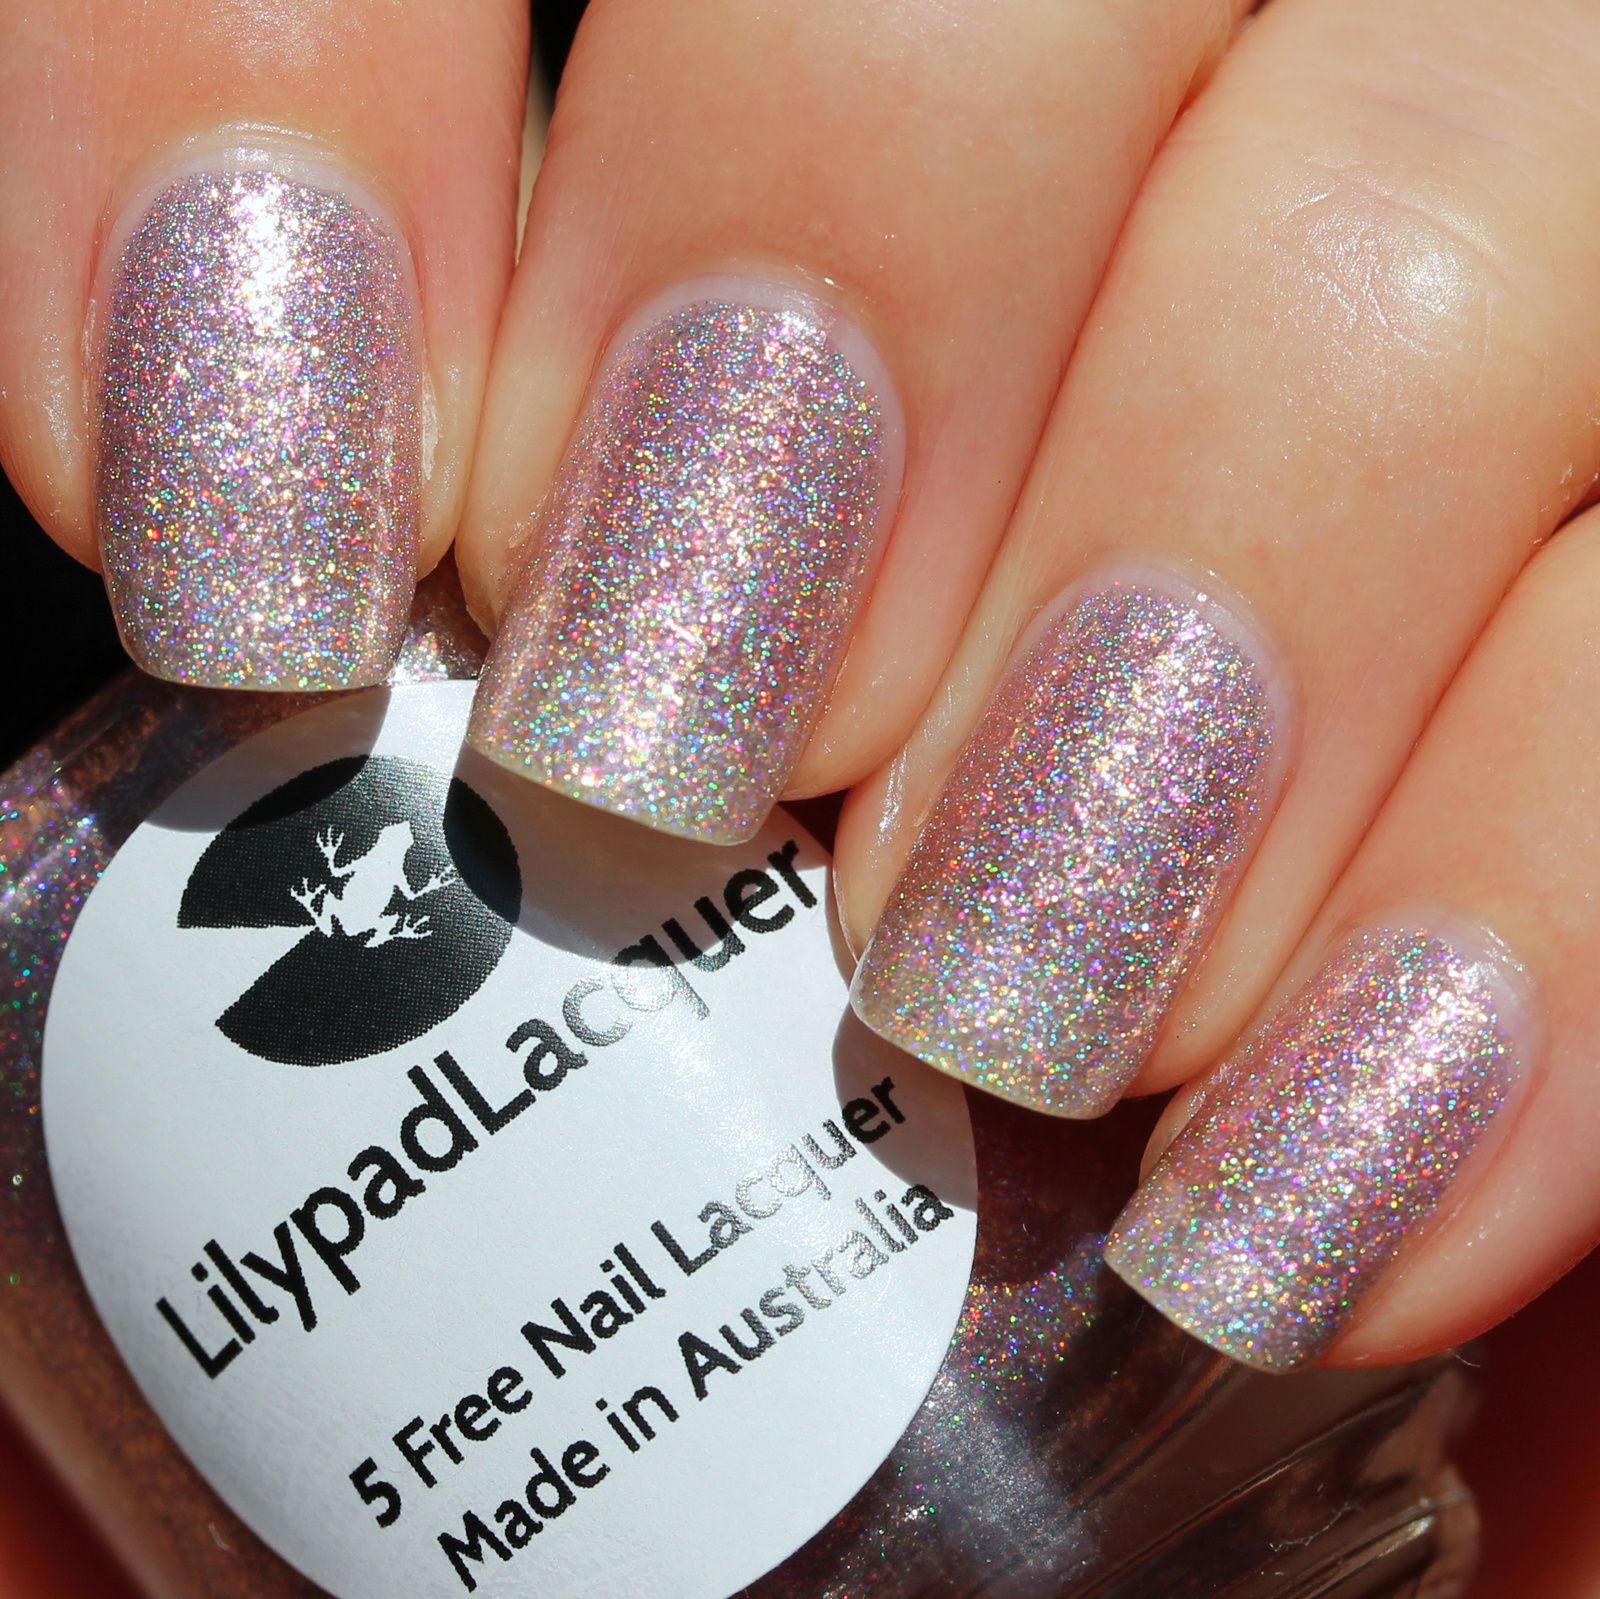 Lilypad Lacquer Magical Moments (2 coats, no top coat)